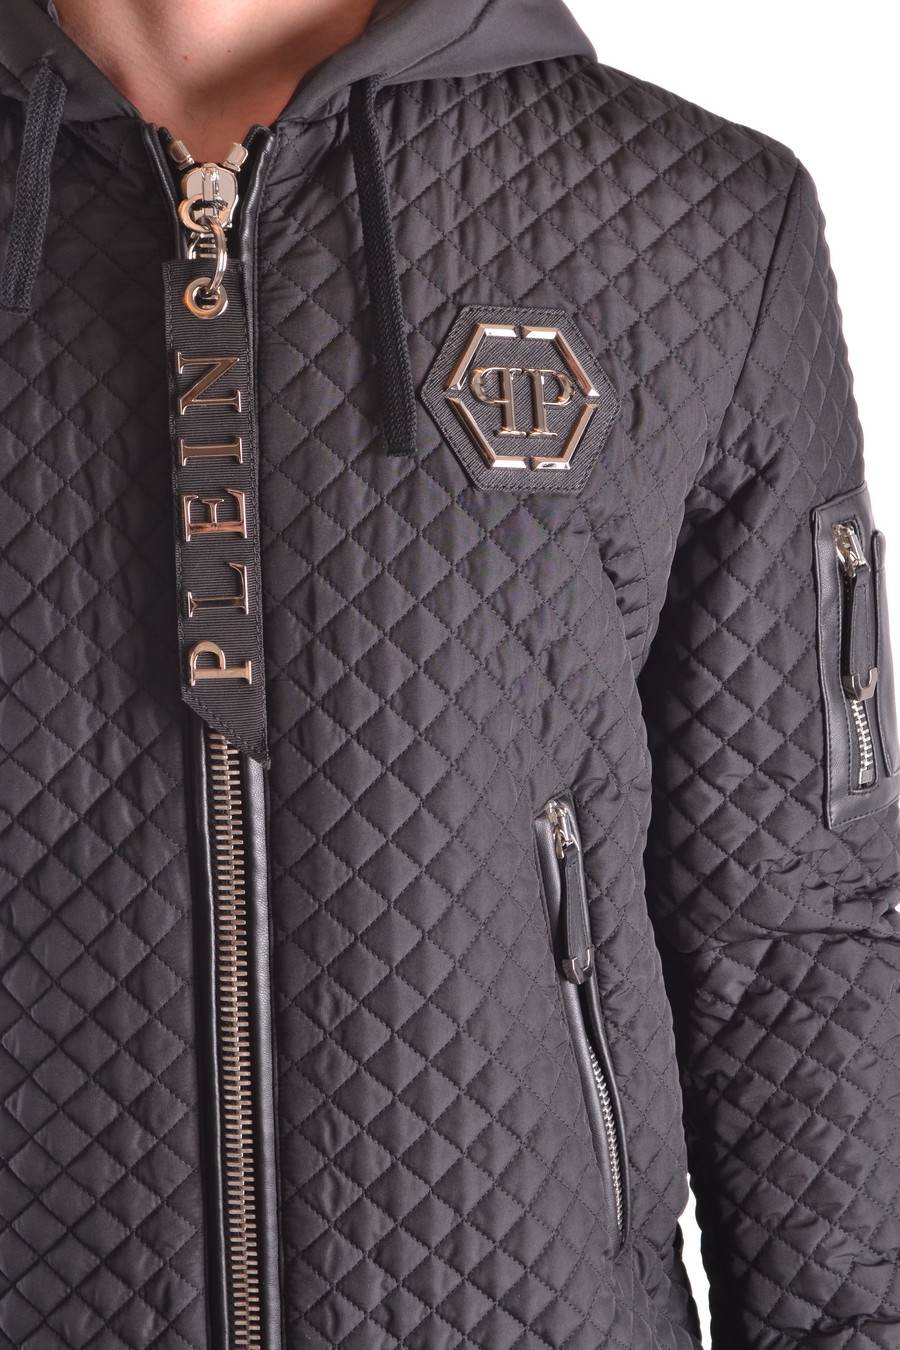 philipp plein jacket. Black Bedroom Furniture Sets. Home Design Ideas